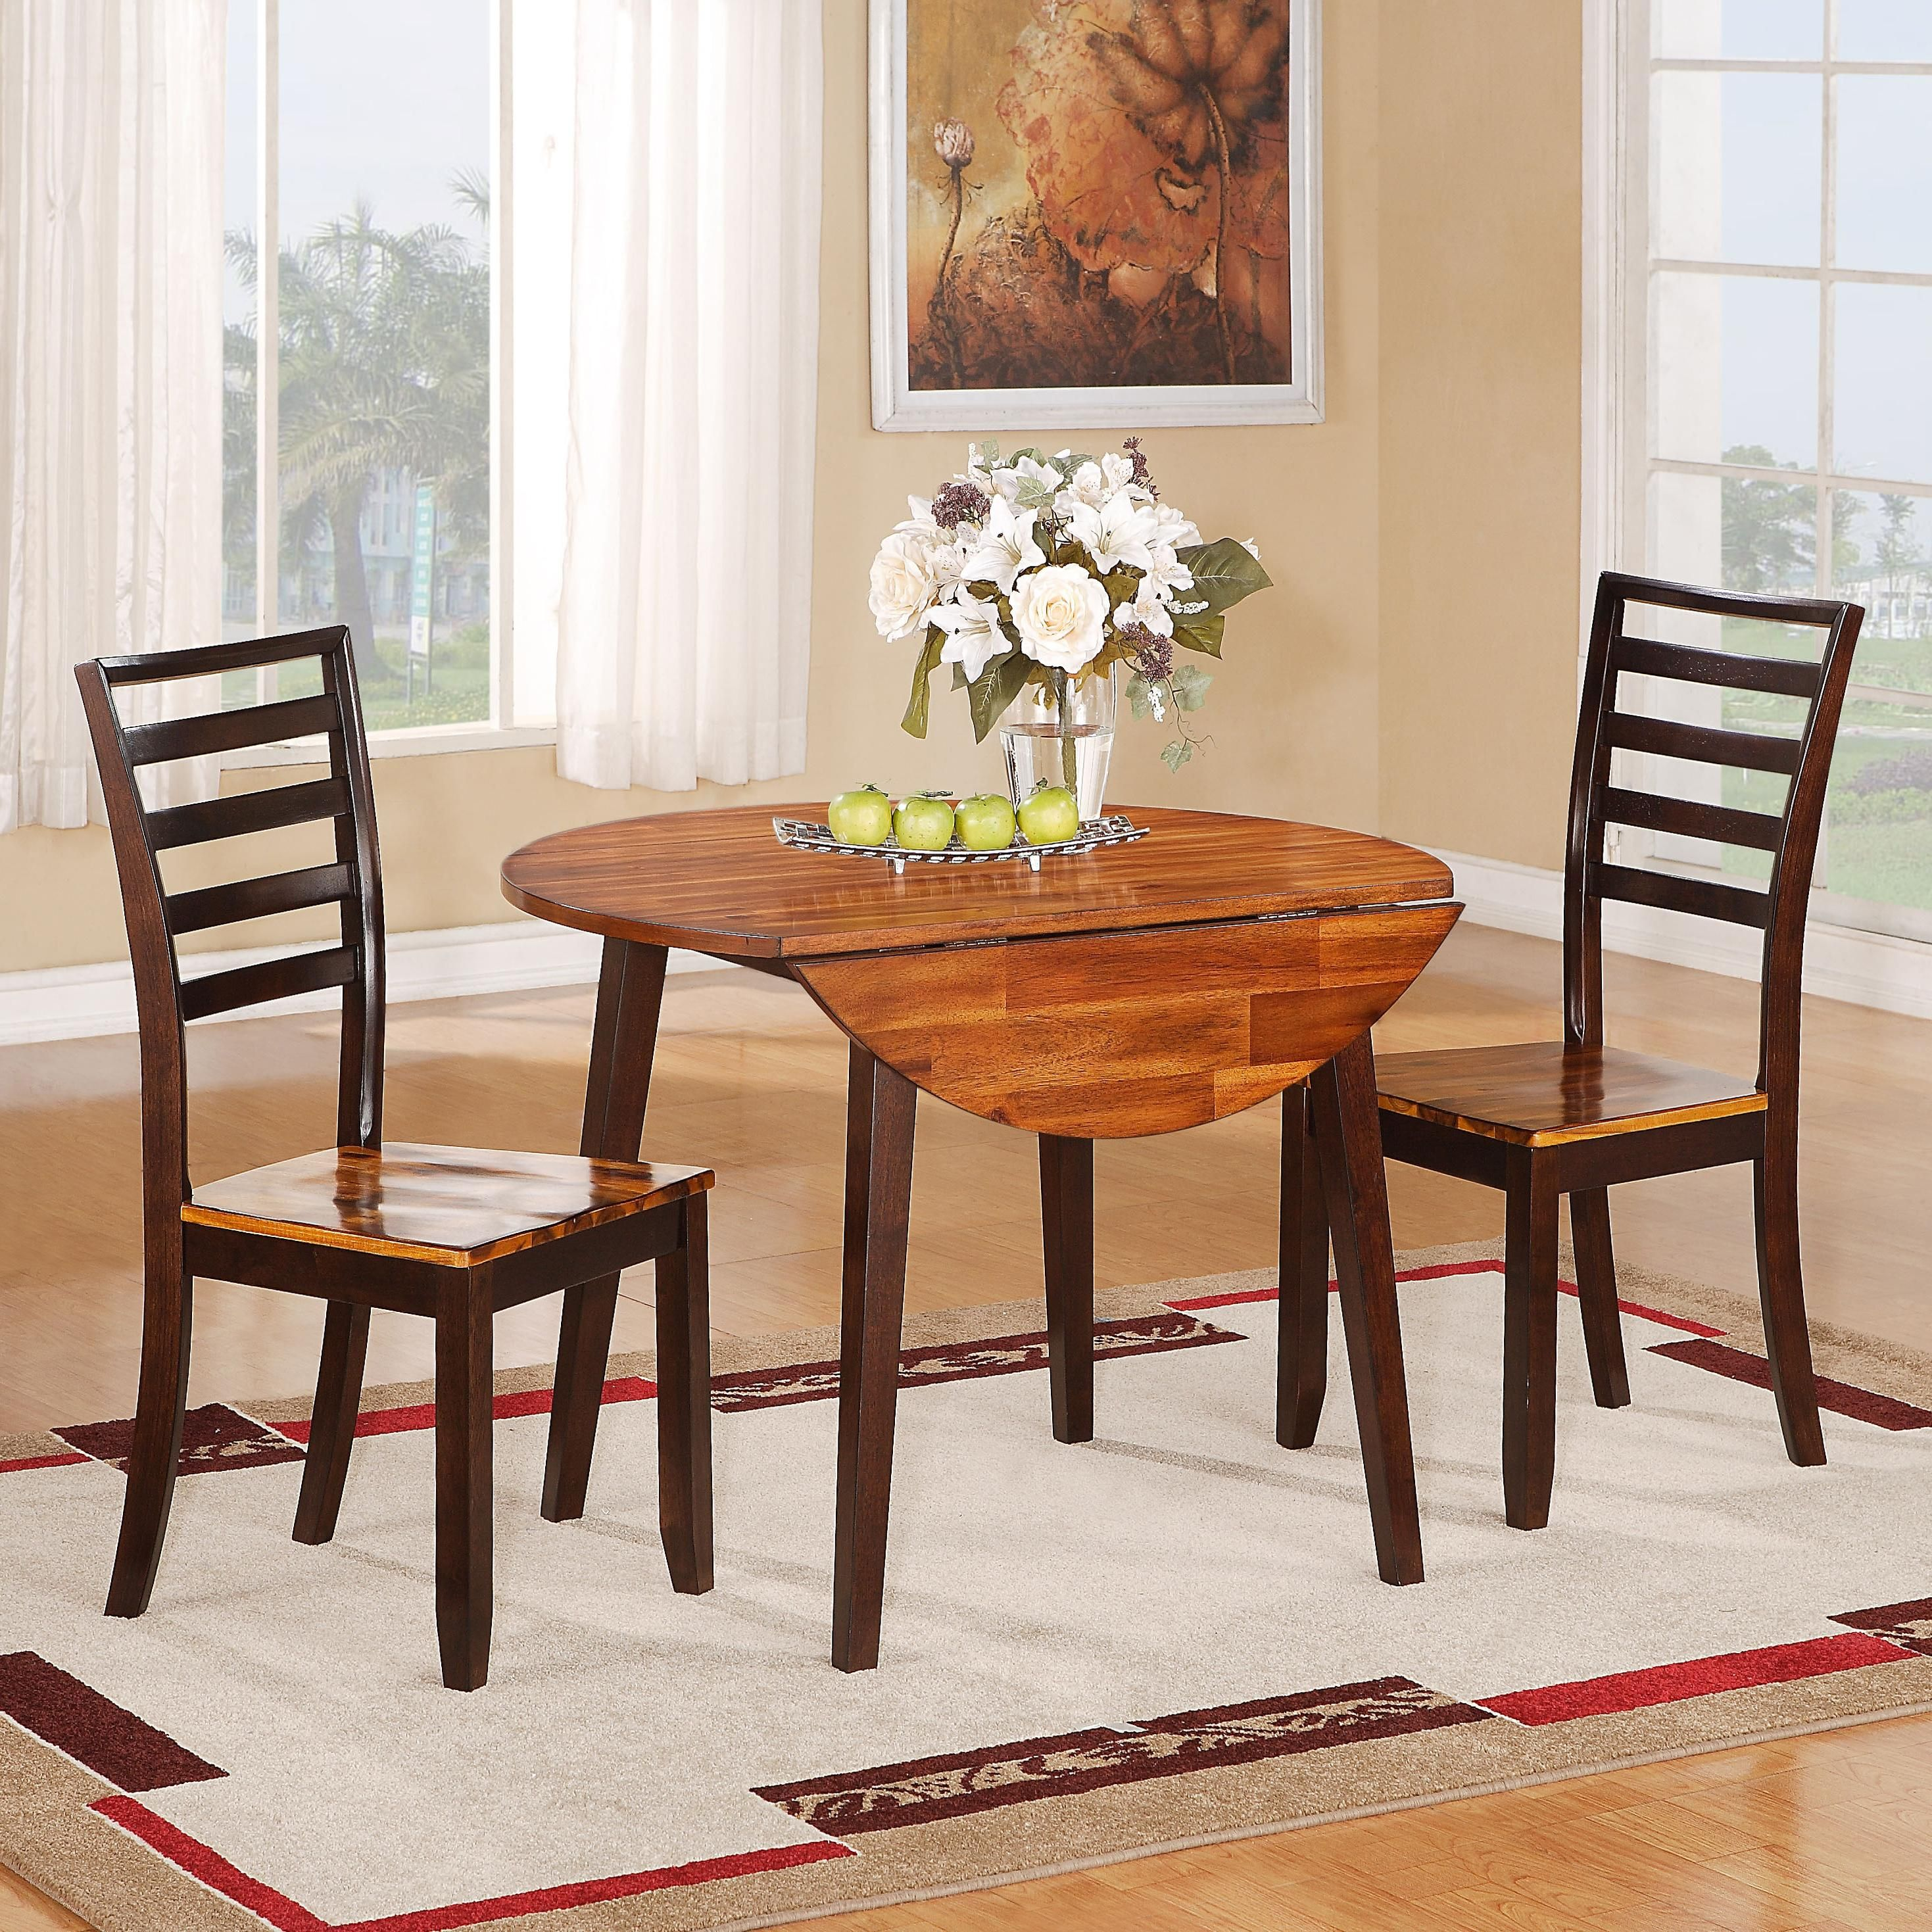 Greer Table 2 Chairs By Hathaway Extendable Dining Table